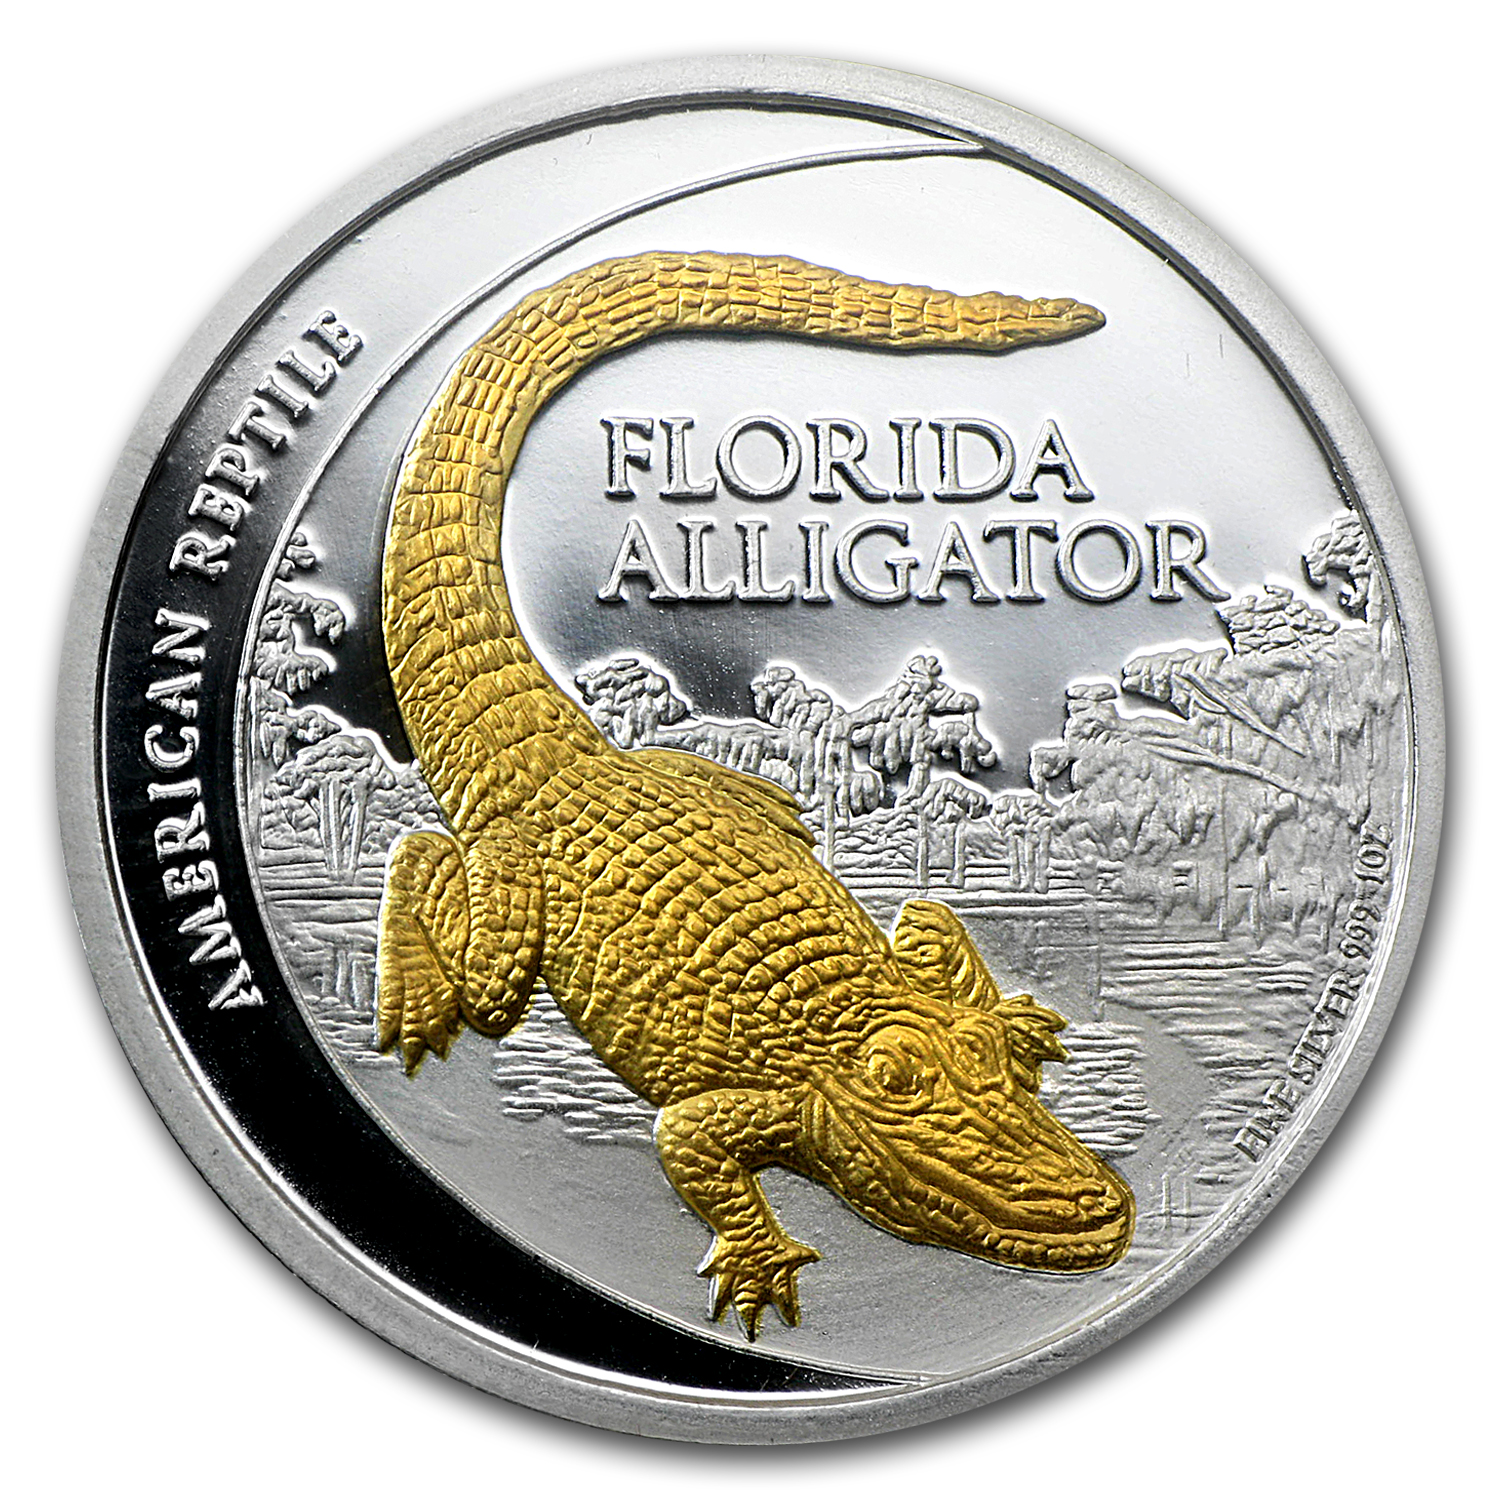 2012 Niue $2 Gilded Florida Alligator 1 oz Silver Proof Coin